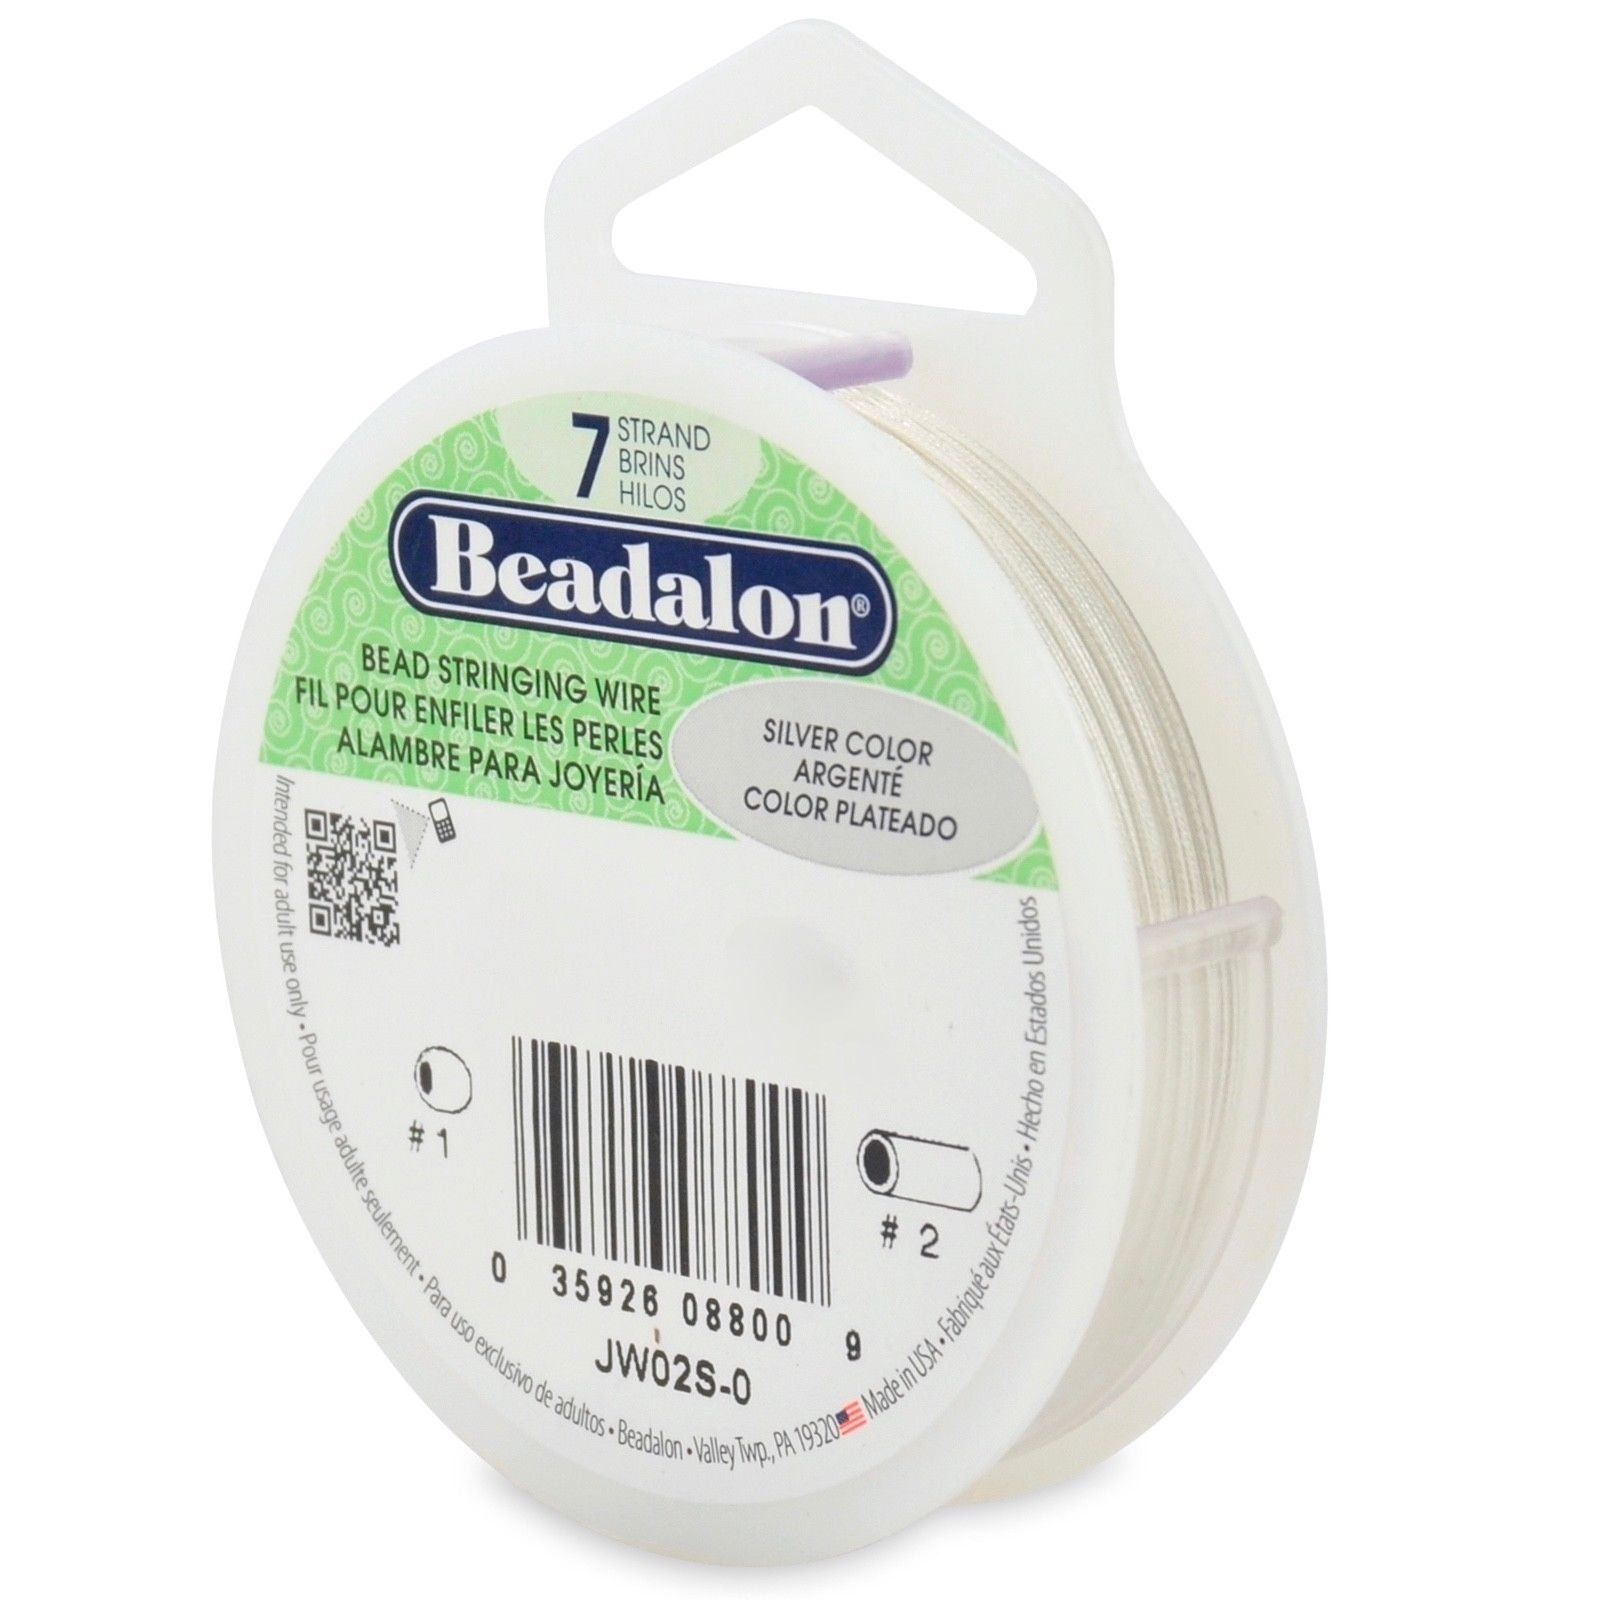 Beadalon Bead Stringing Wire 7 Strand Flex 8 Sizes 14 Colors Electrical Wiring Usa